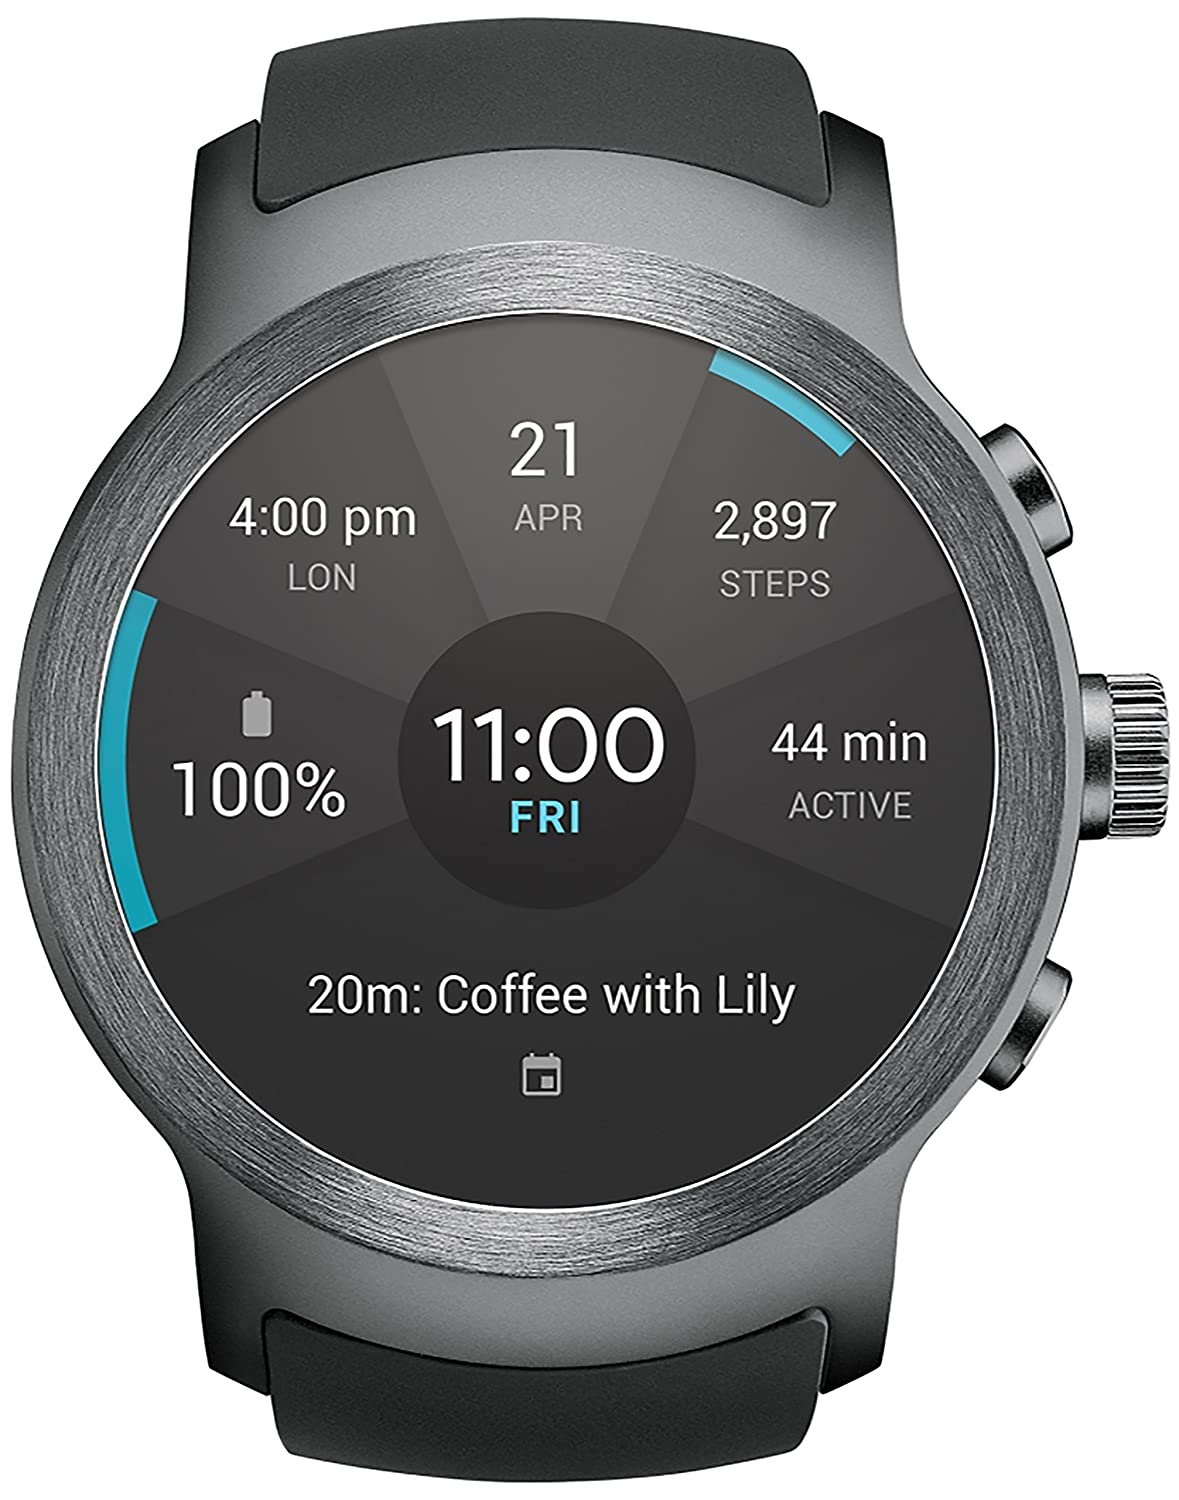 Amazon.com : LG Watch SPORT Wi-Fi + Unlocked GSM Smartwatch ...